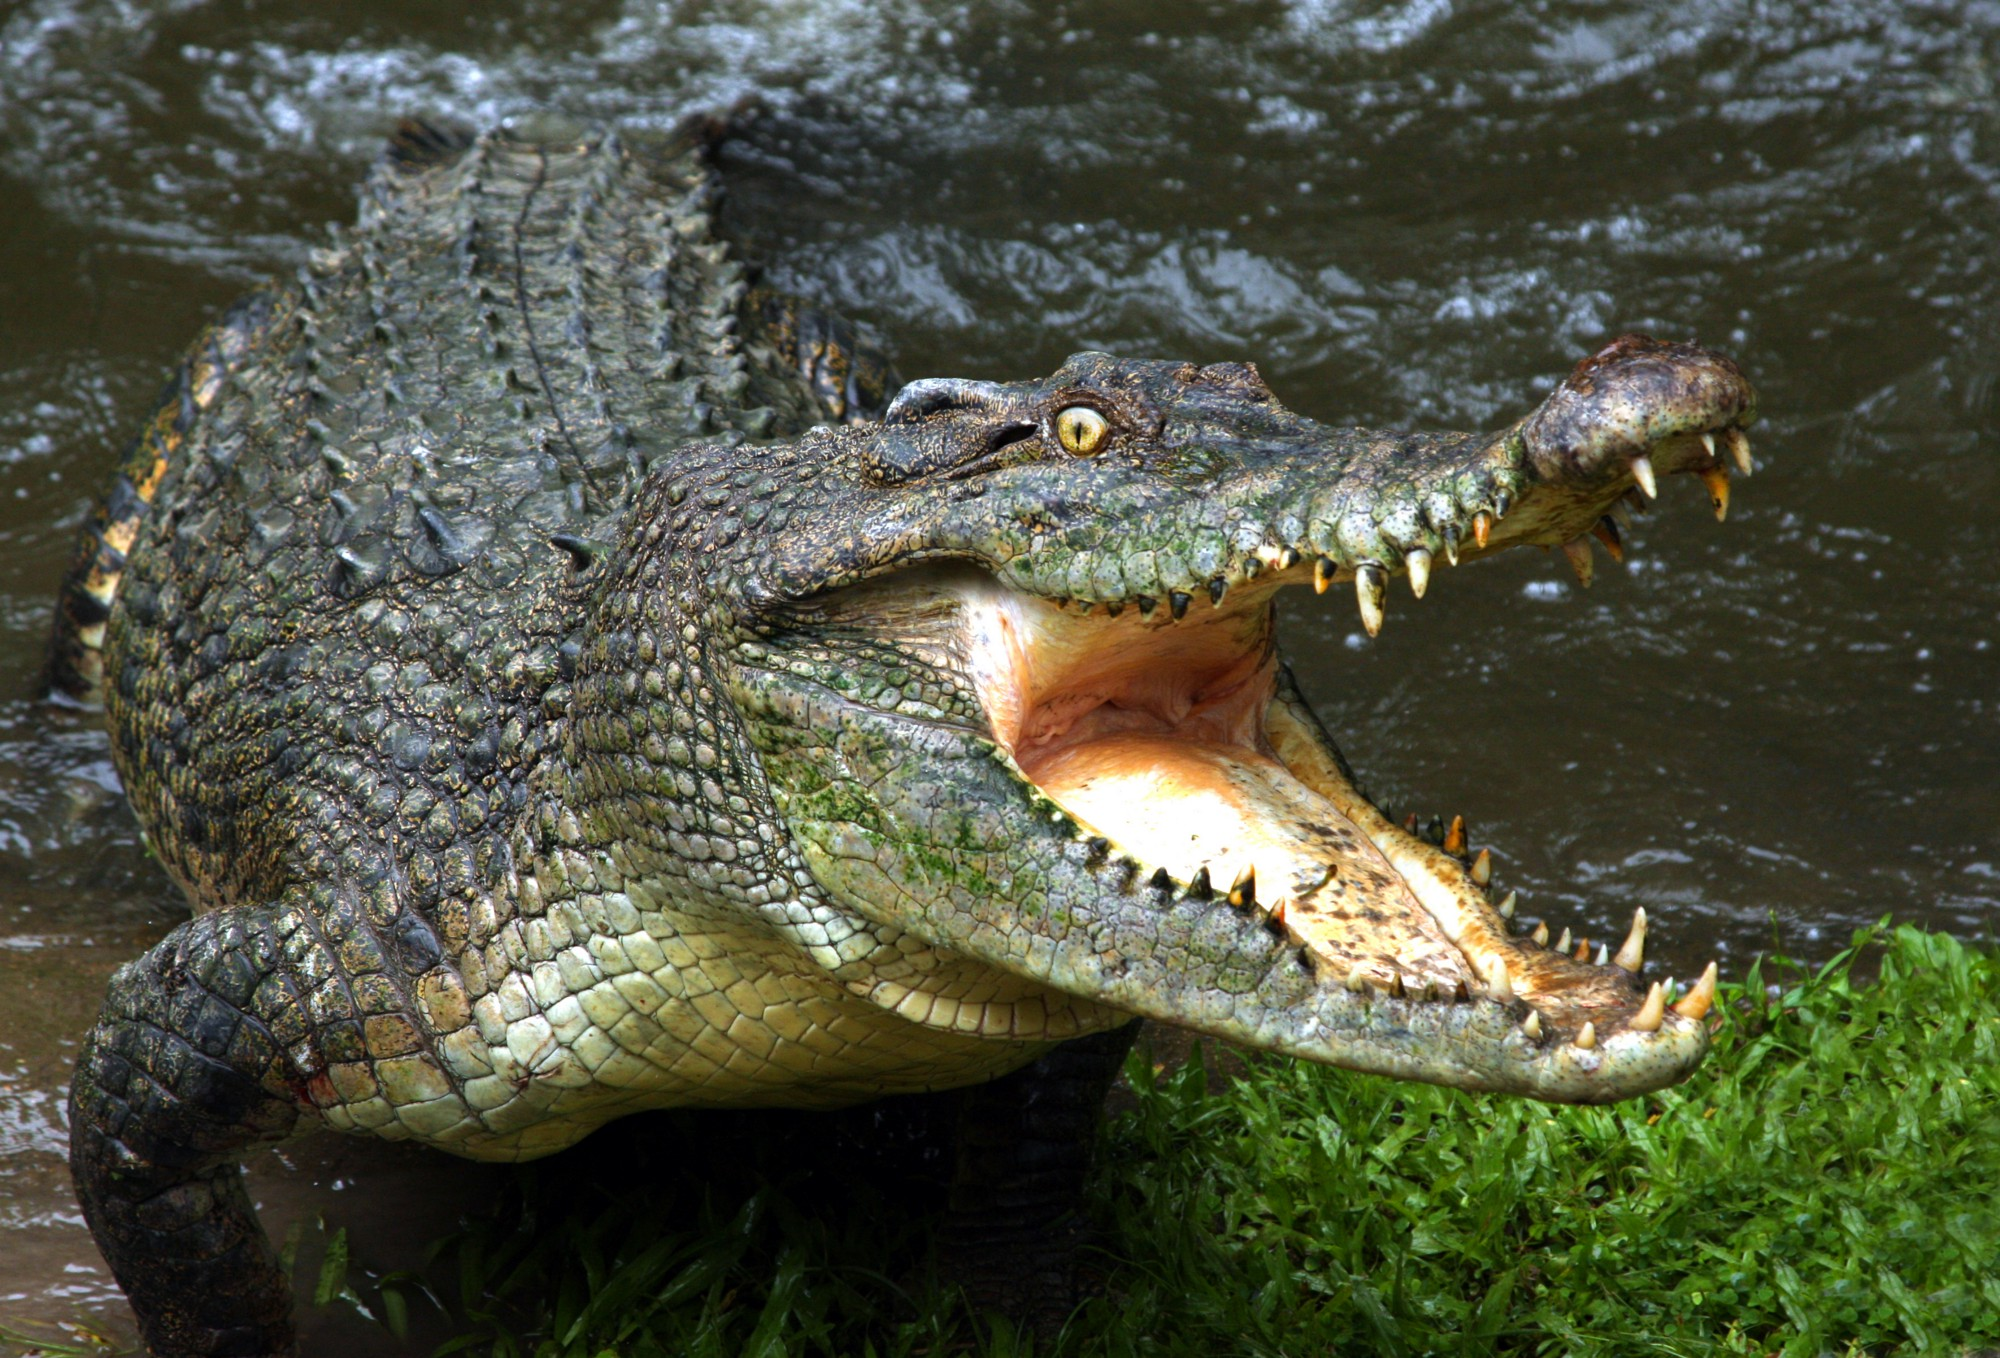 The enormous crocodile — owner of nature's most complex heart